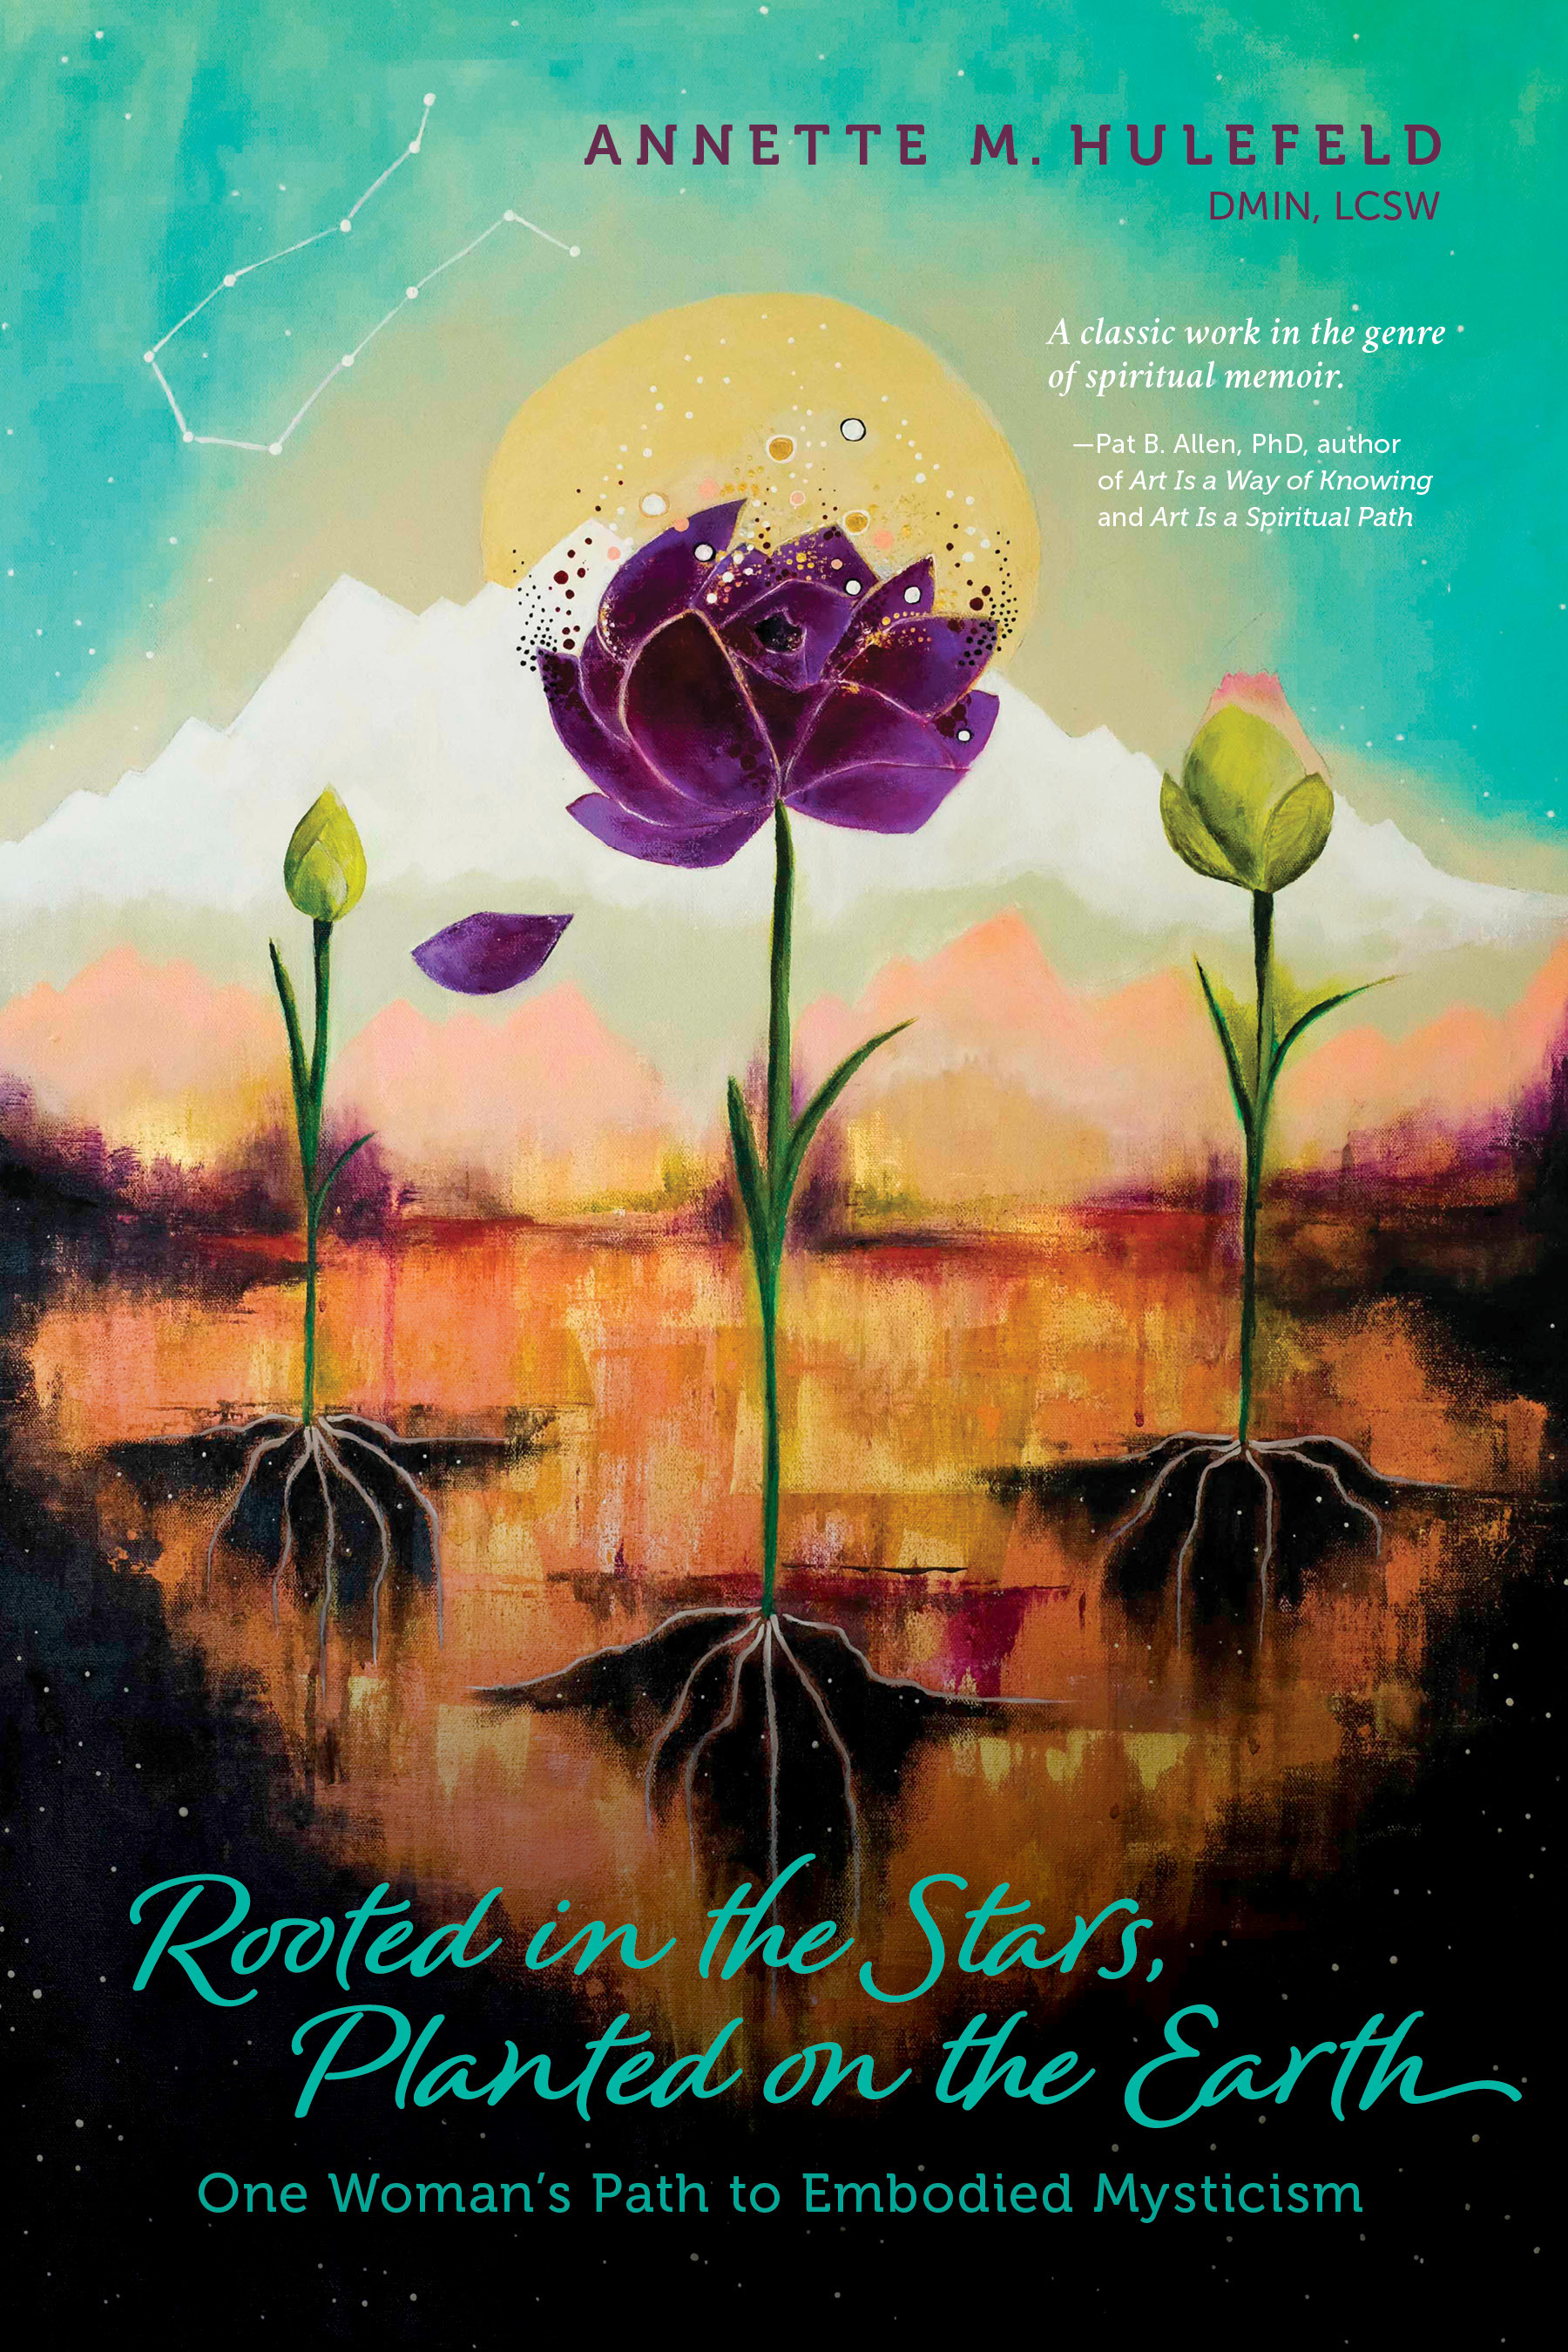 Rooted in the Stars, Planted on the Earth: One Woman's Path to Embodied Mysticism